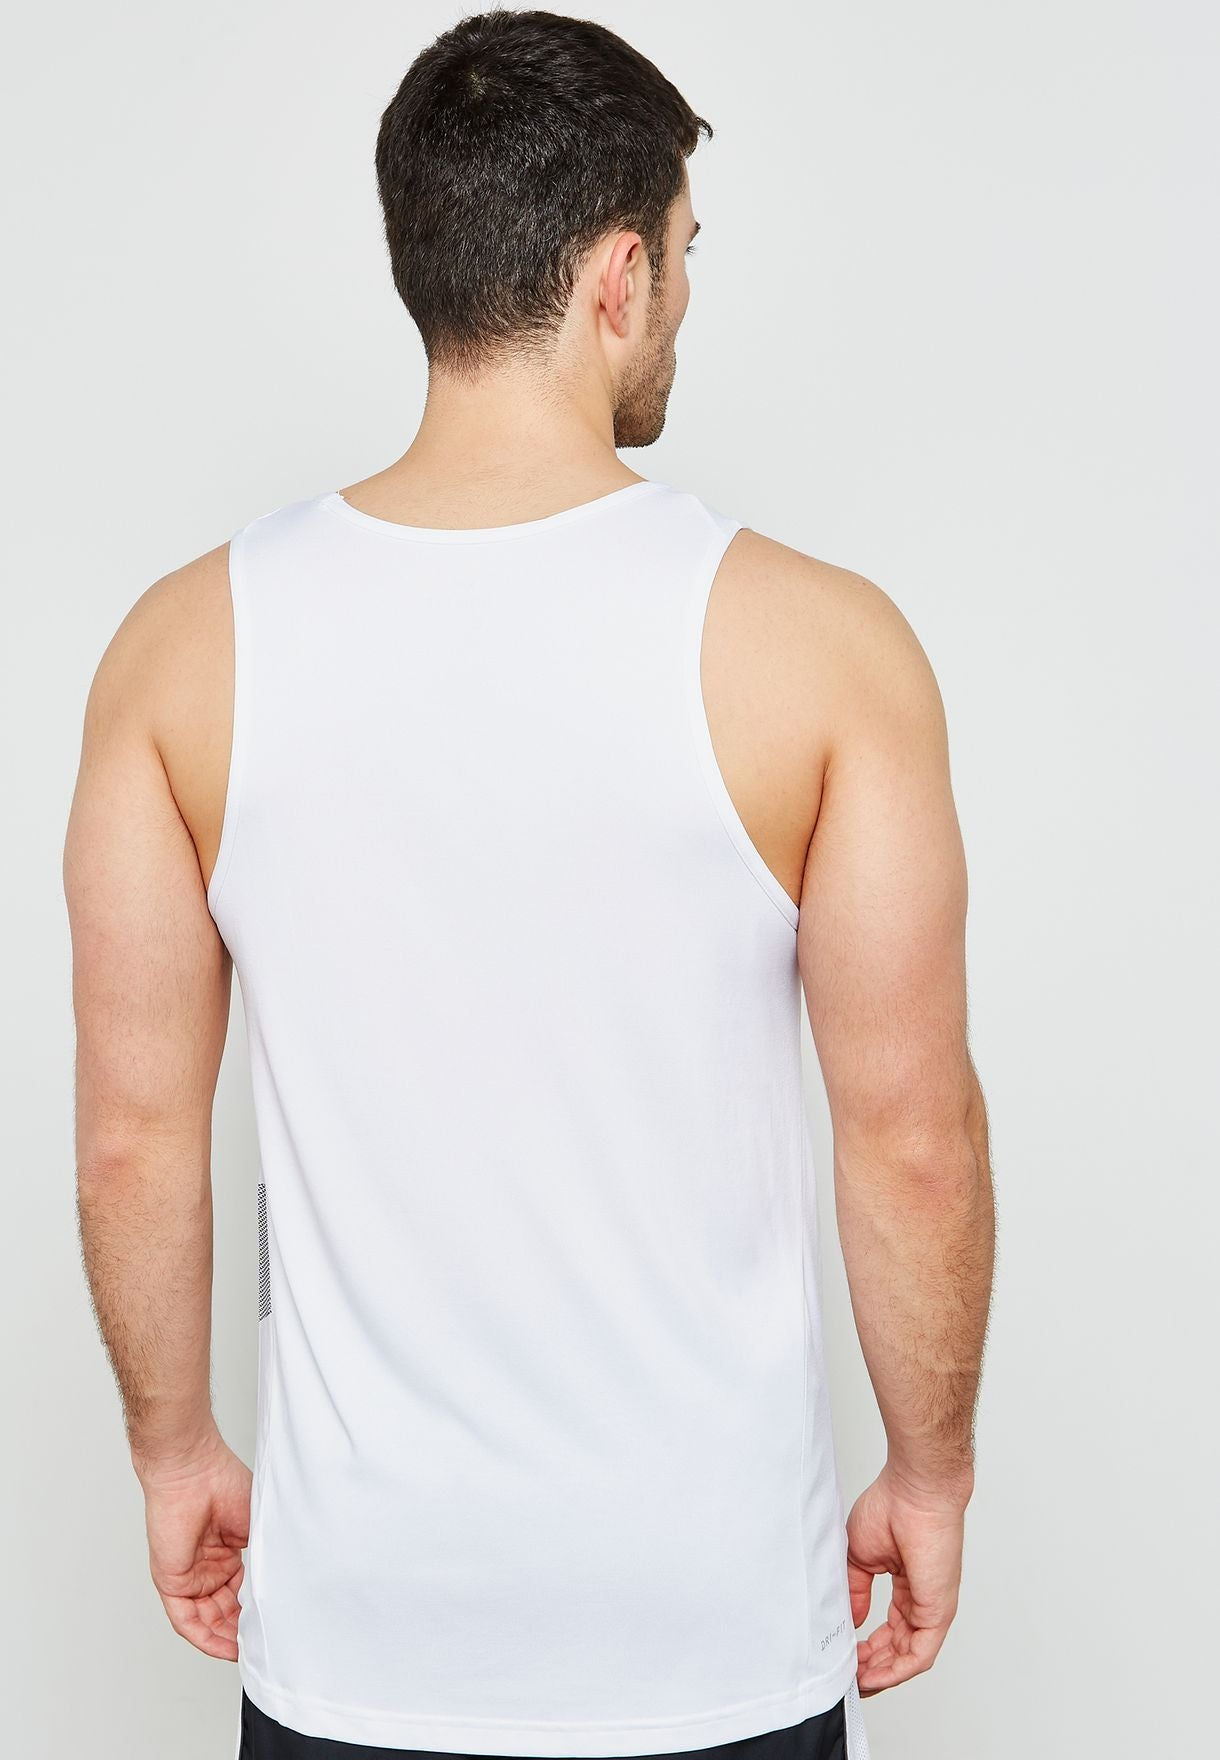 Men's Nike Breathe Training Tank.       889633-100